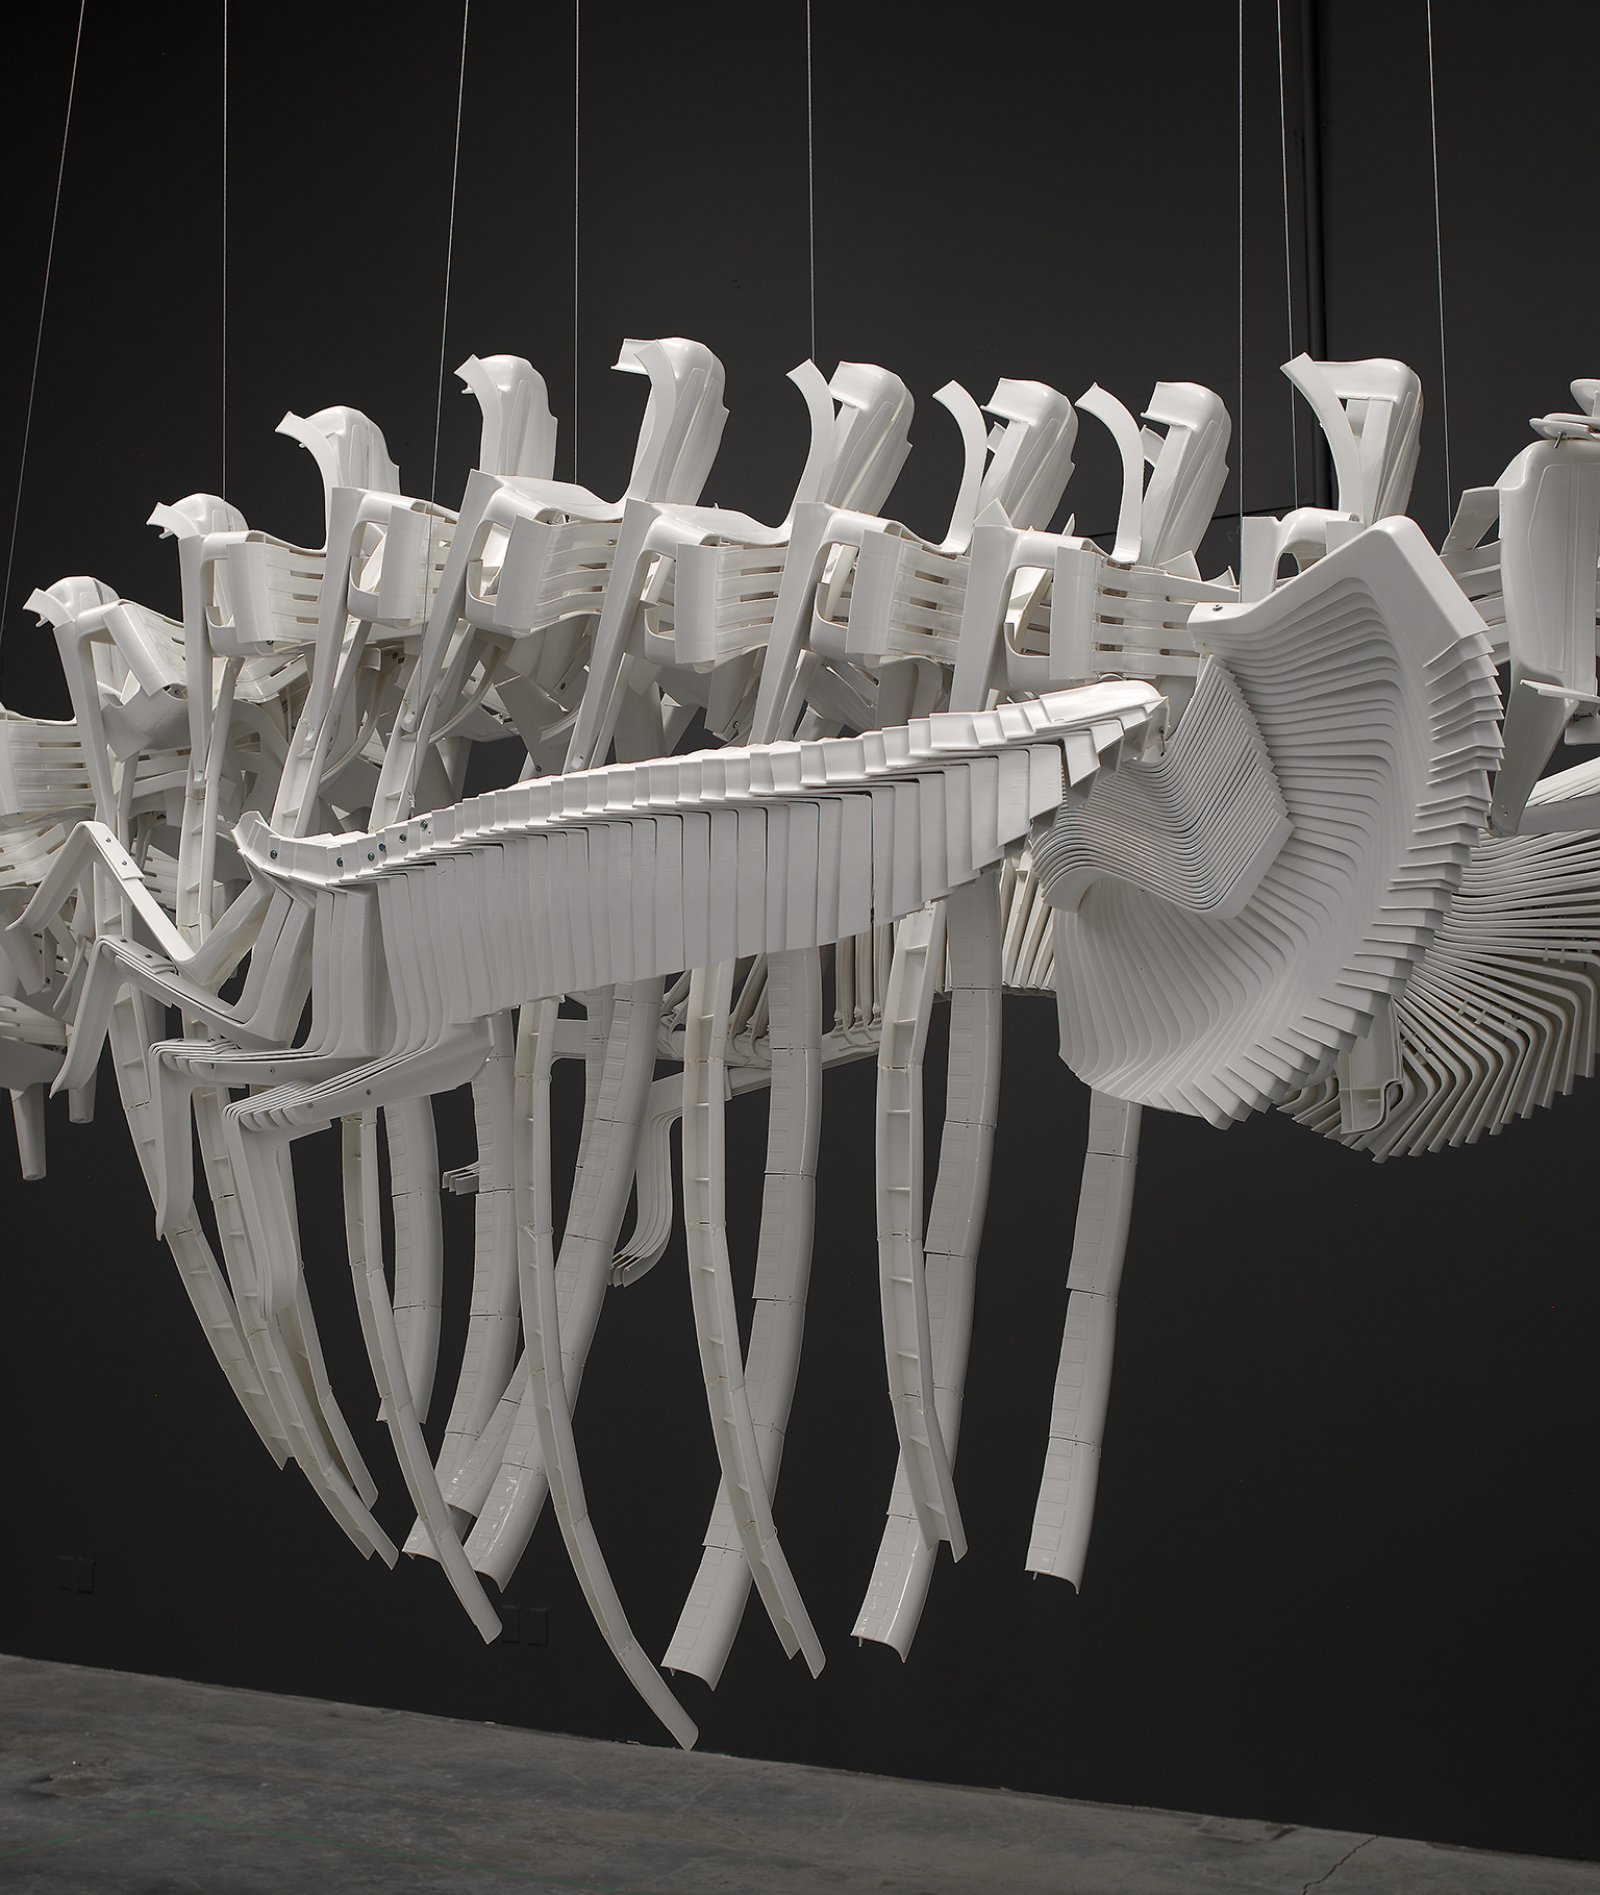 Brian Jungen,Cetology(detail), 2002, plastic chairs, 159 x 166 x 587 in. (404 x 422 x 1491 cm)